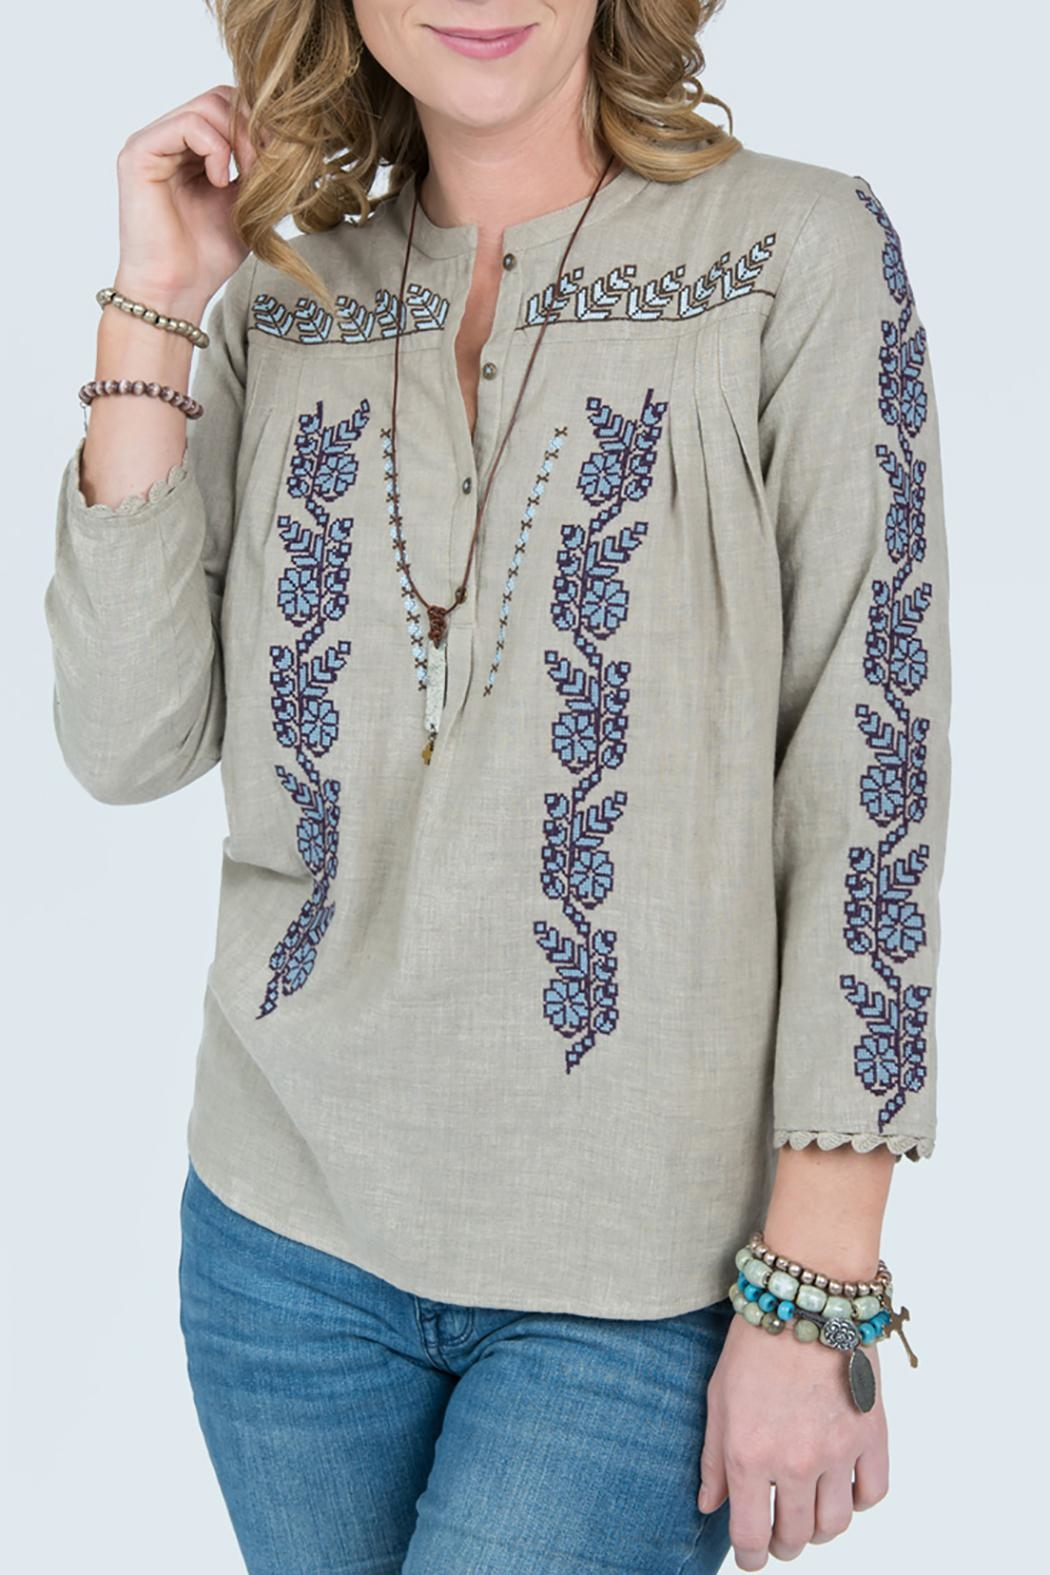 Ivy Jane Embroidery Button Top From Dallas By Hip Chic Boutique